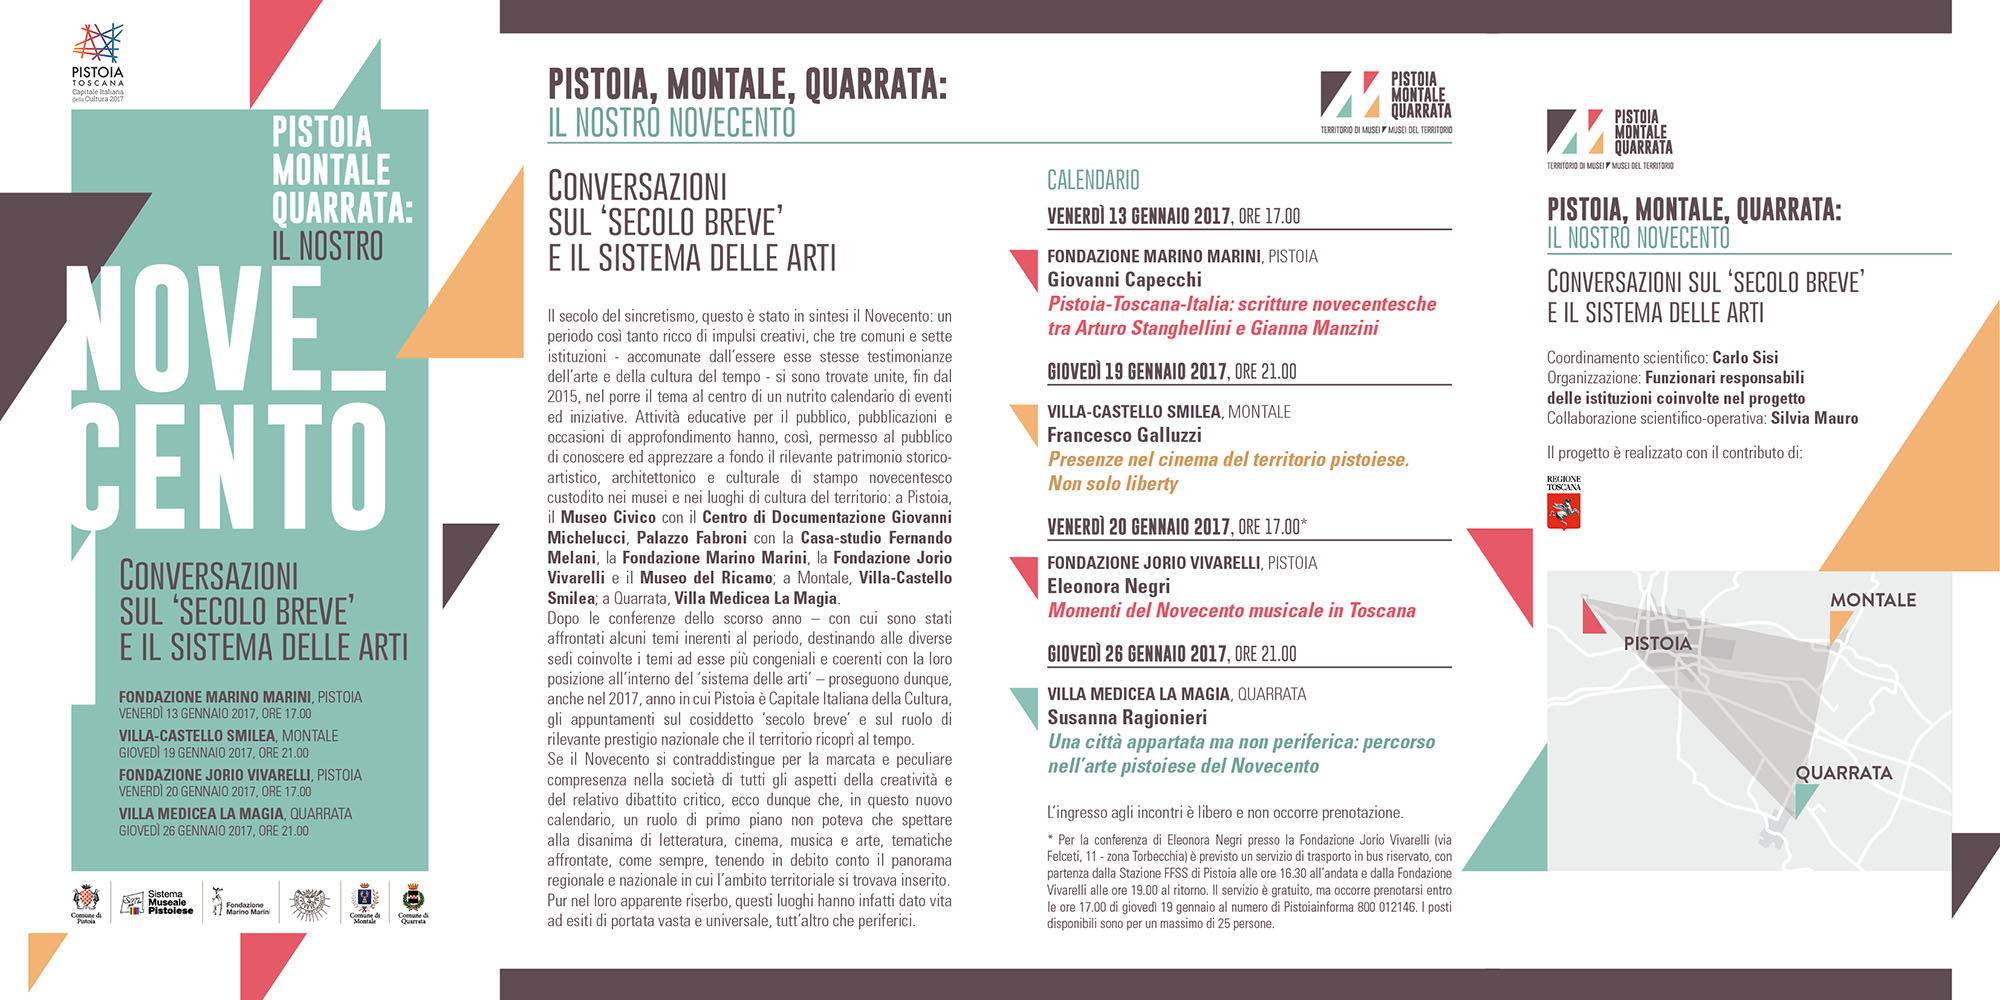 pistoia e il novecento calendario conferenze